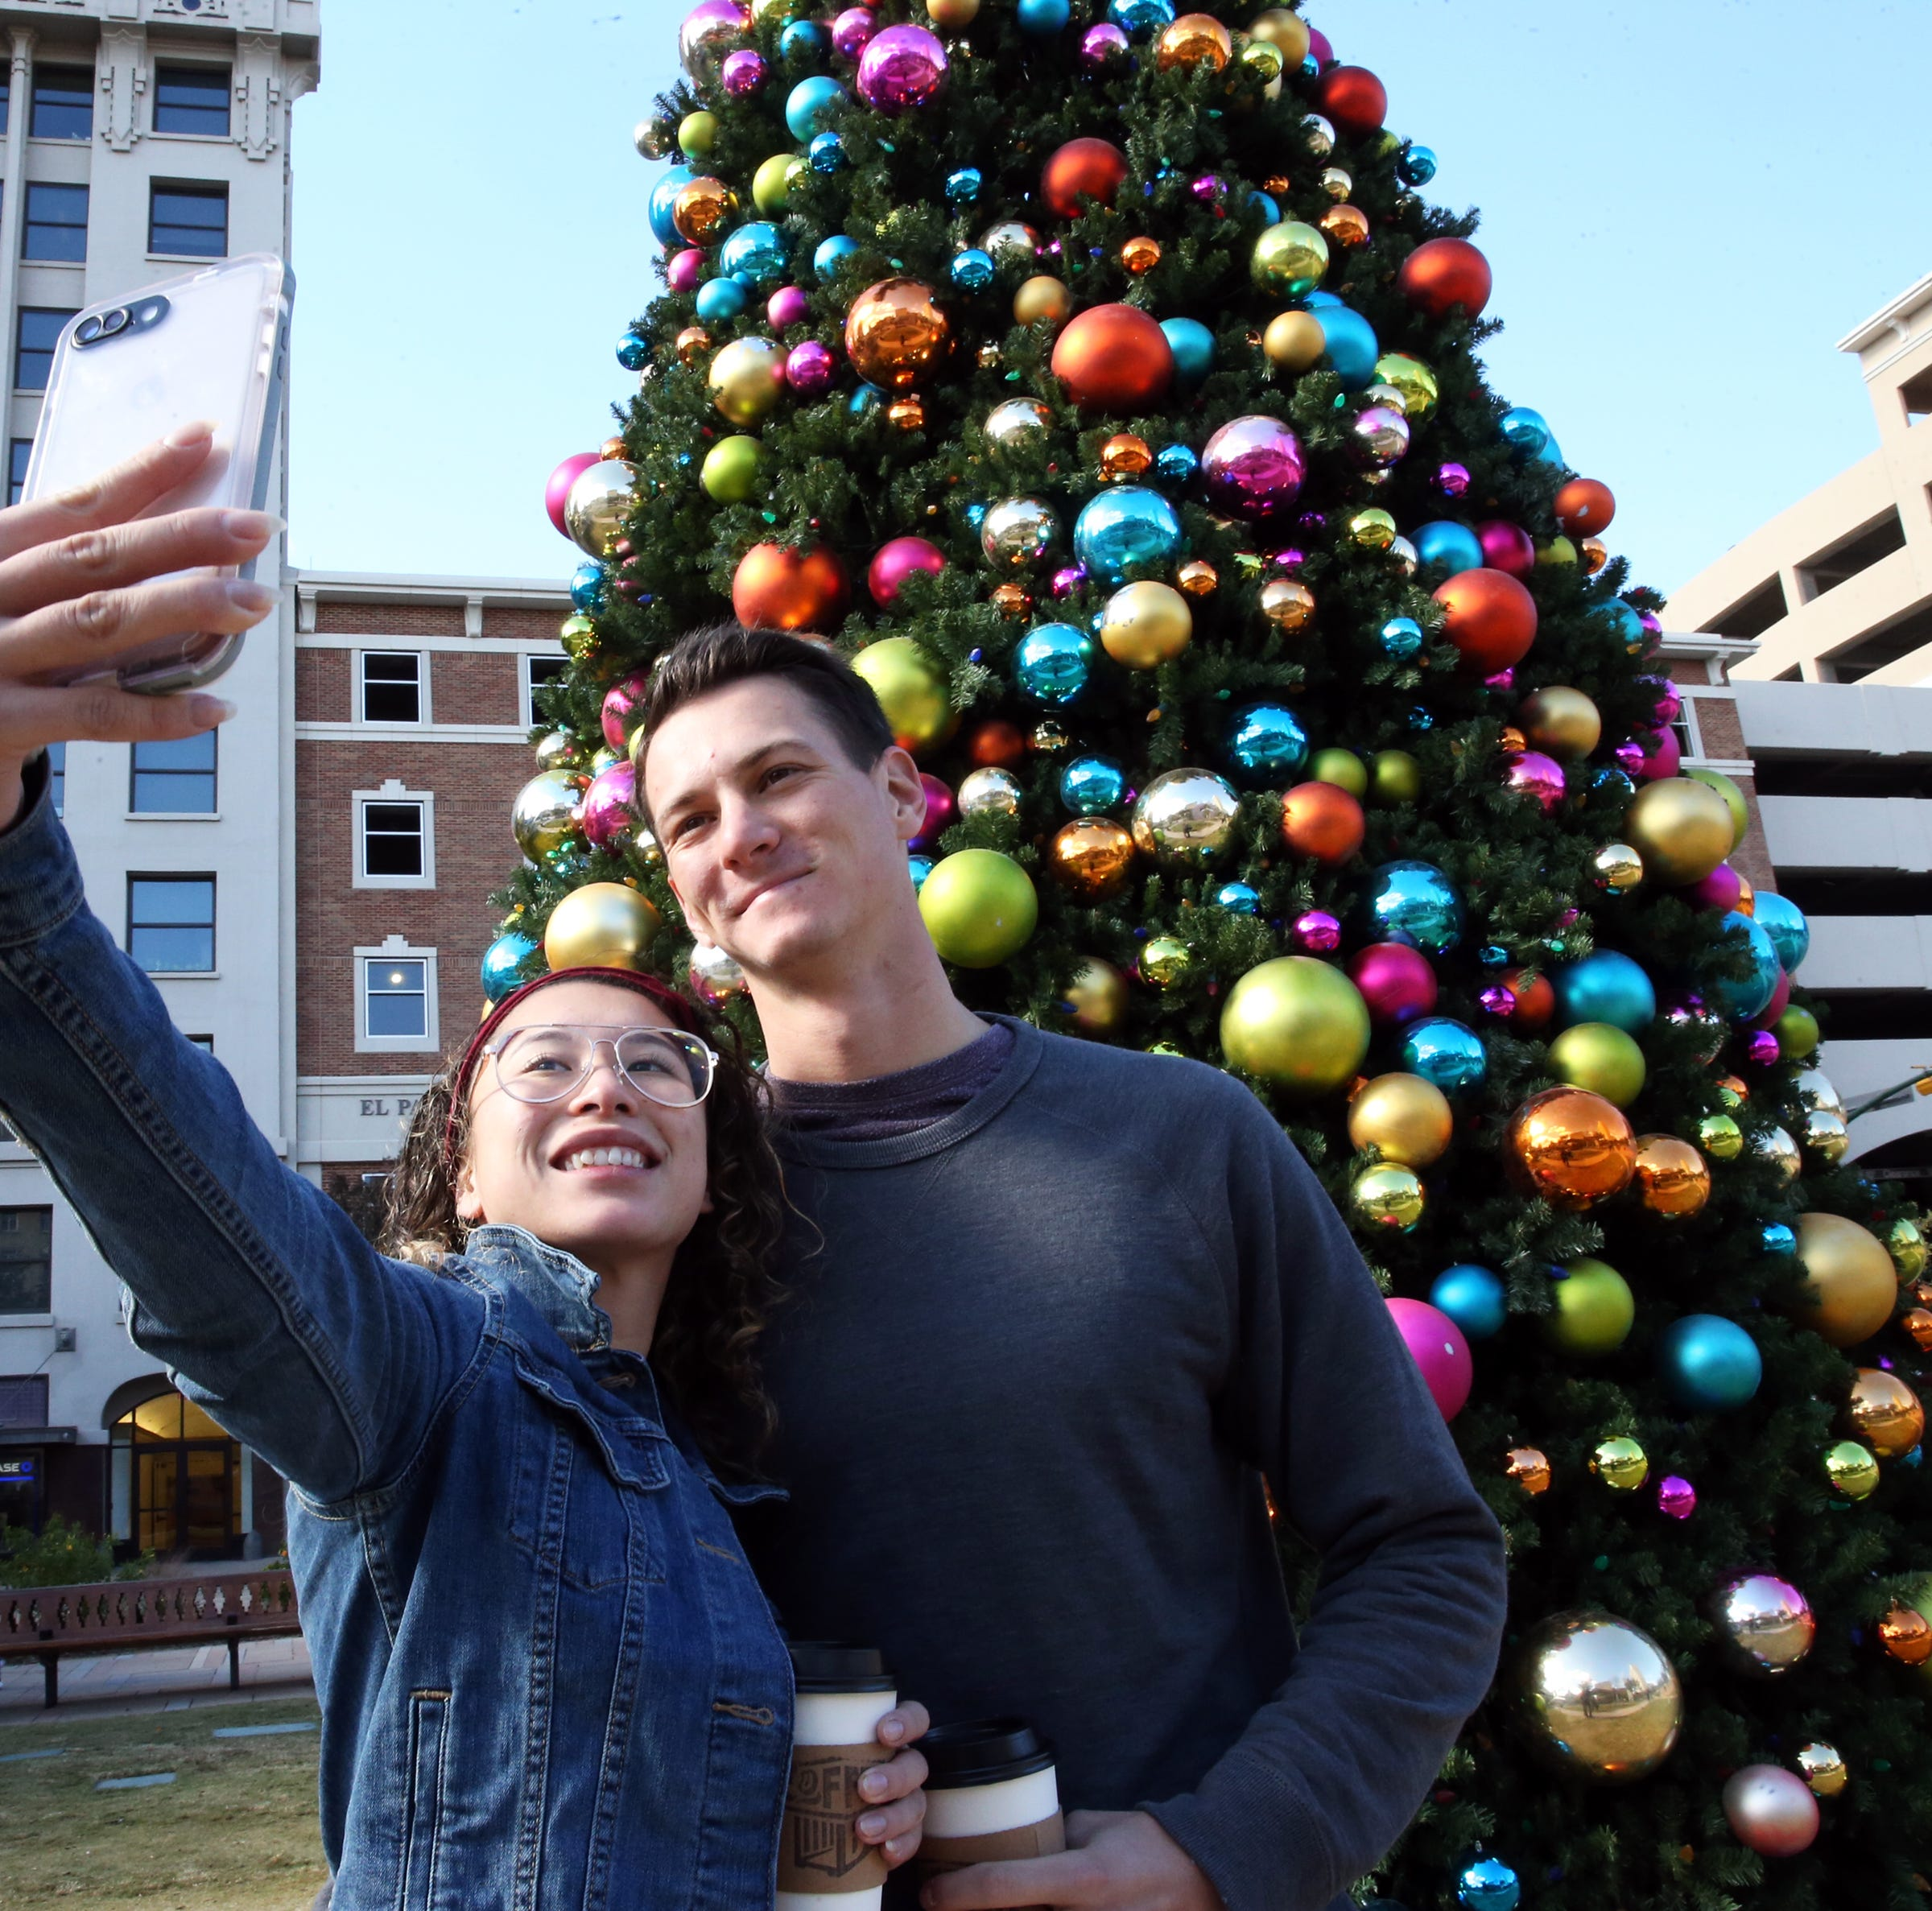 El Paso things to do: WinterFest opens with parade, tree lighting, ice skating, more